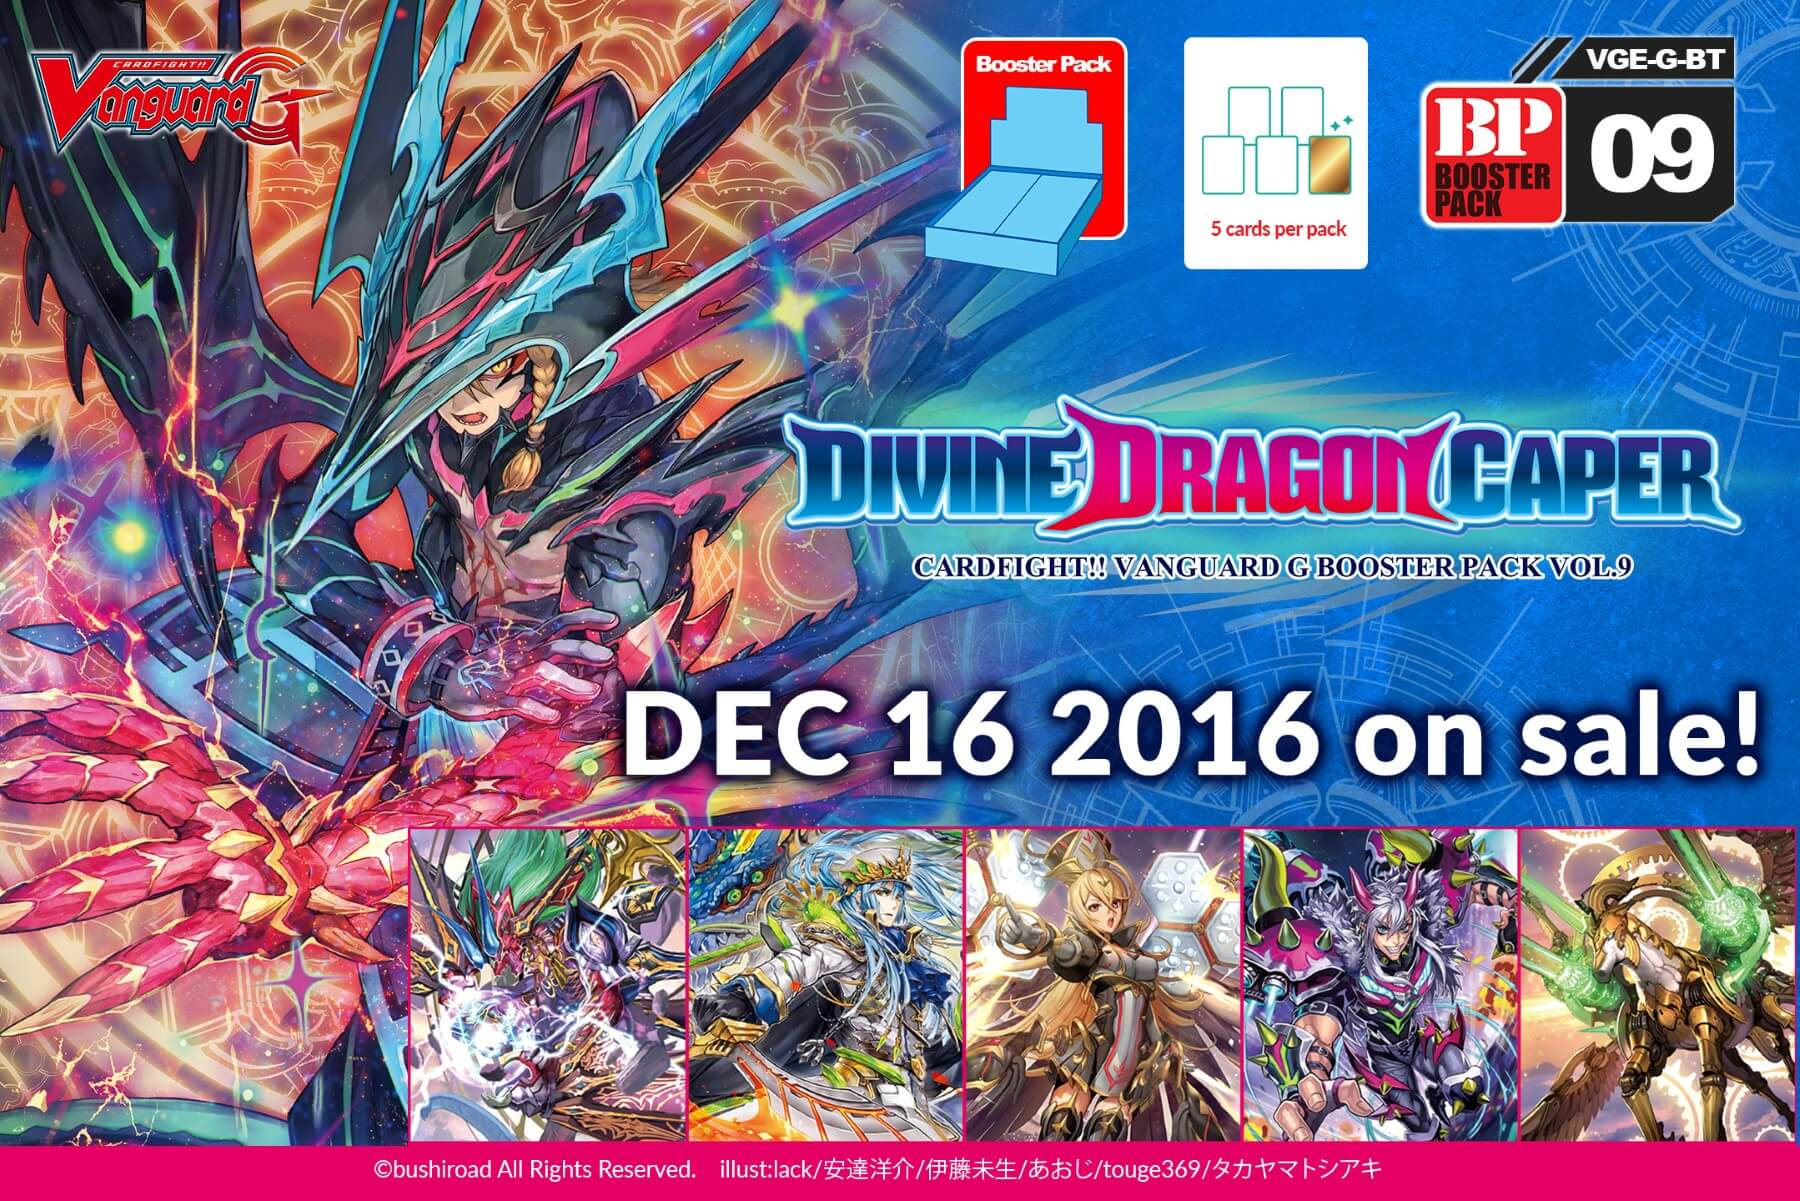 [G-BT09] Divine Dragon Caper